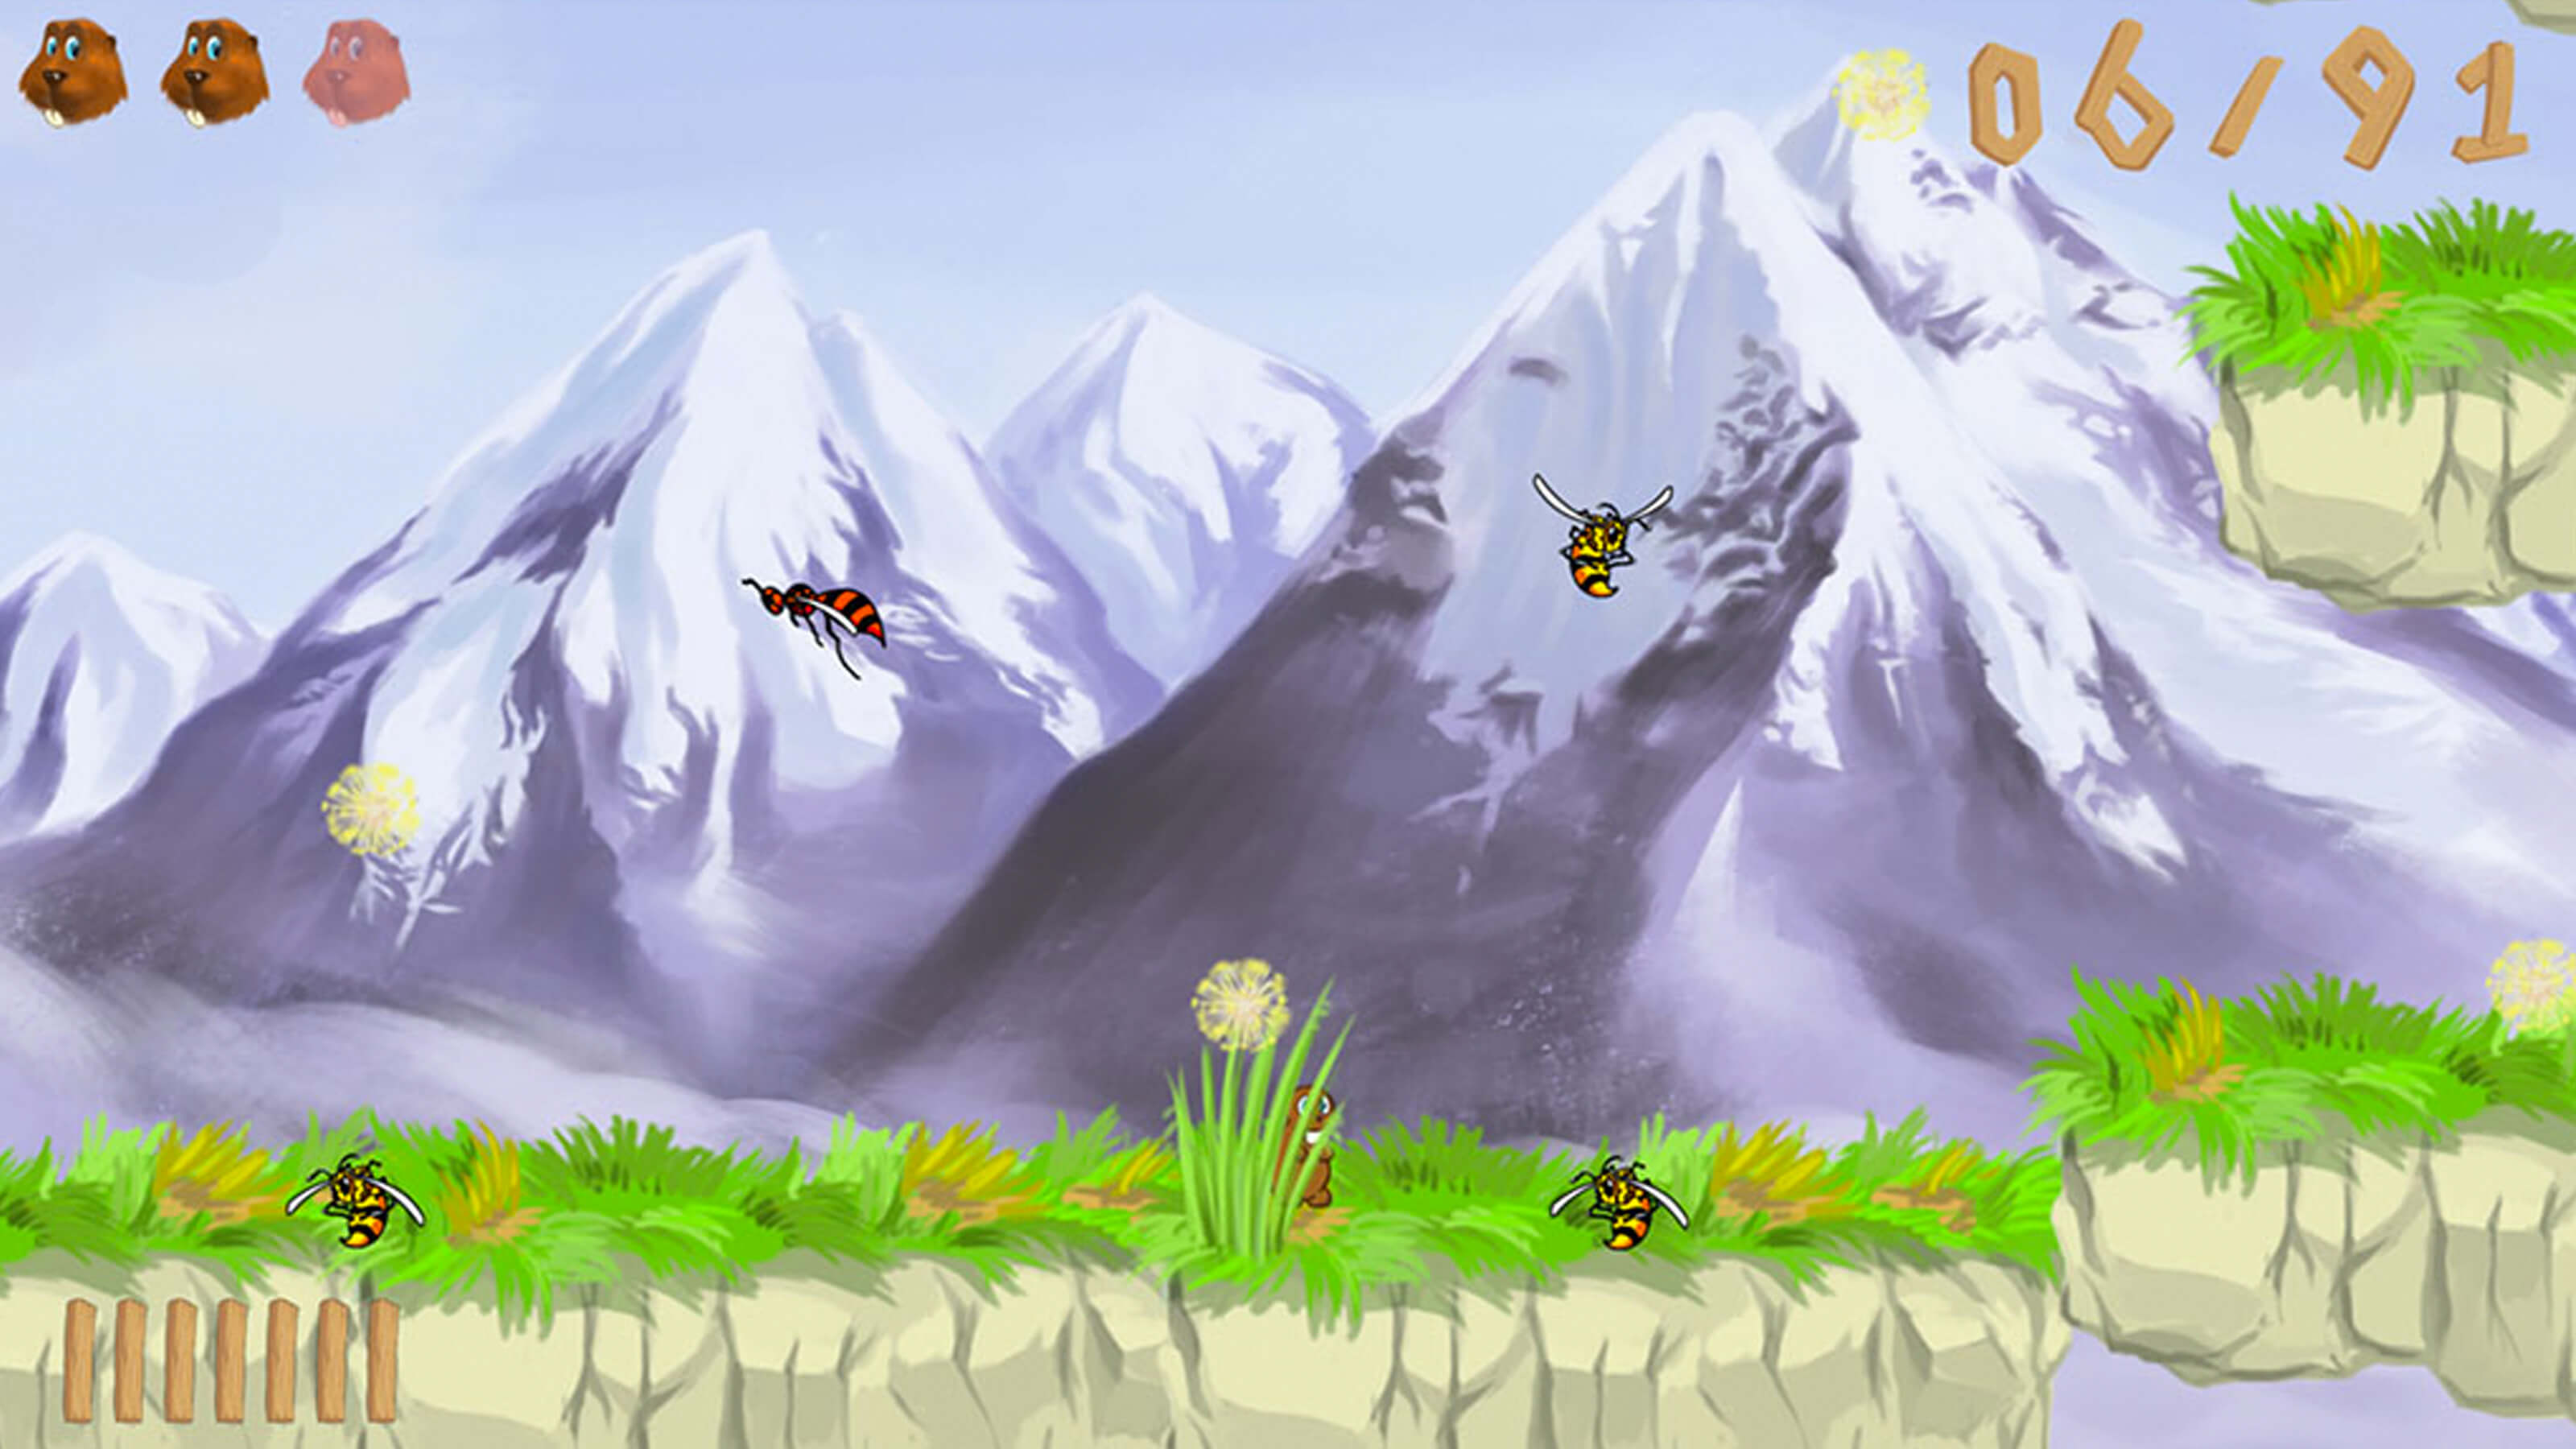 A beaver hides behind a tuft of grass as wasps fly around. Snowy mountain peaks rise in the background.